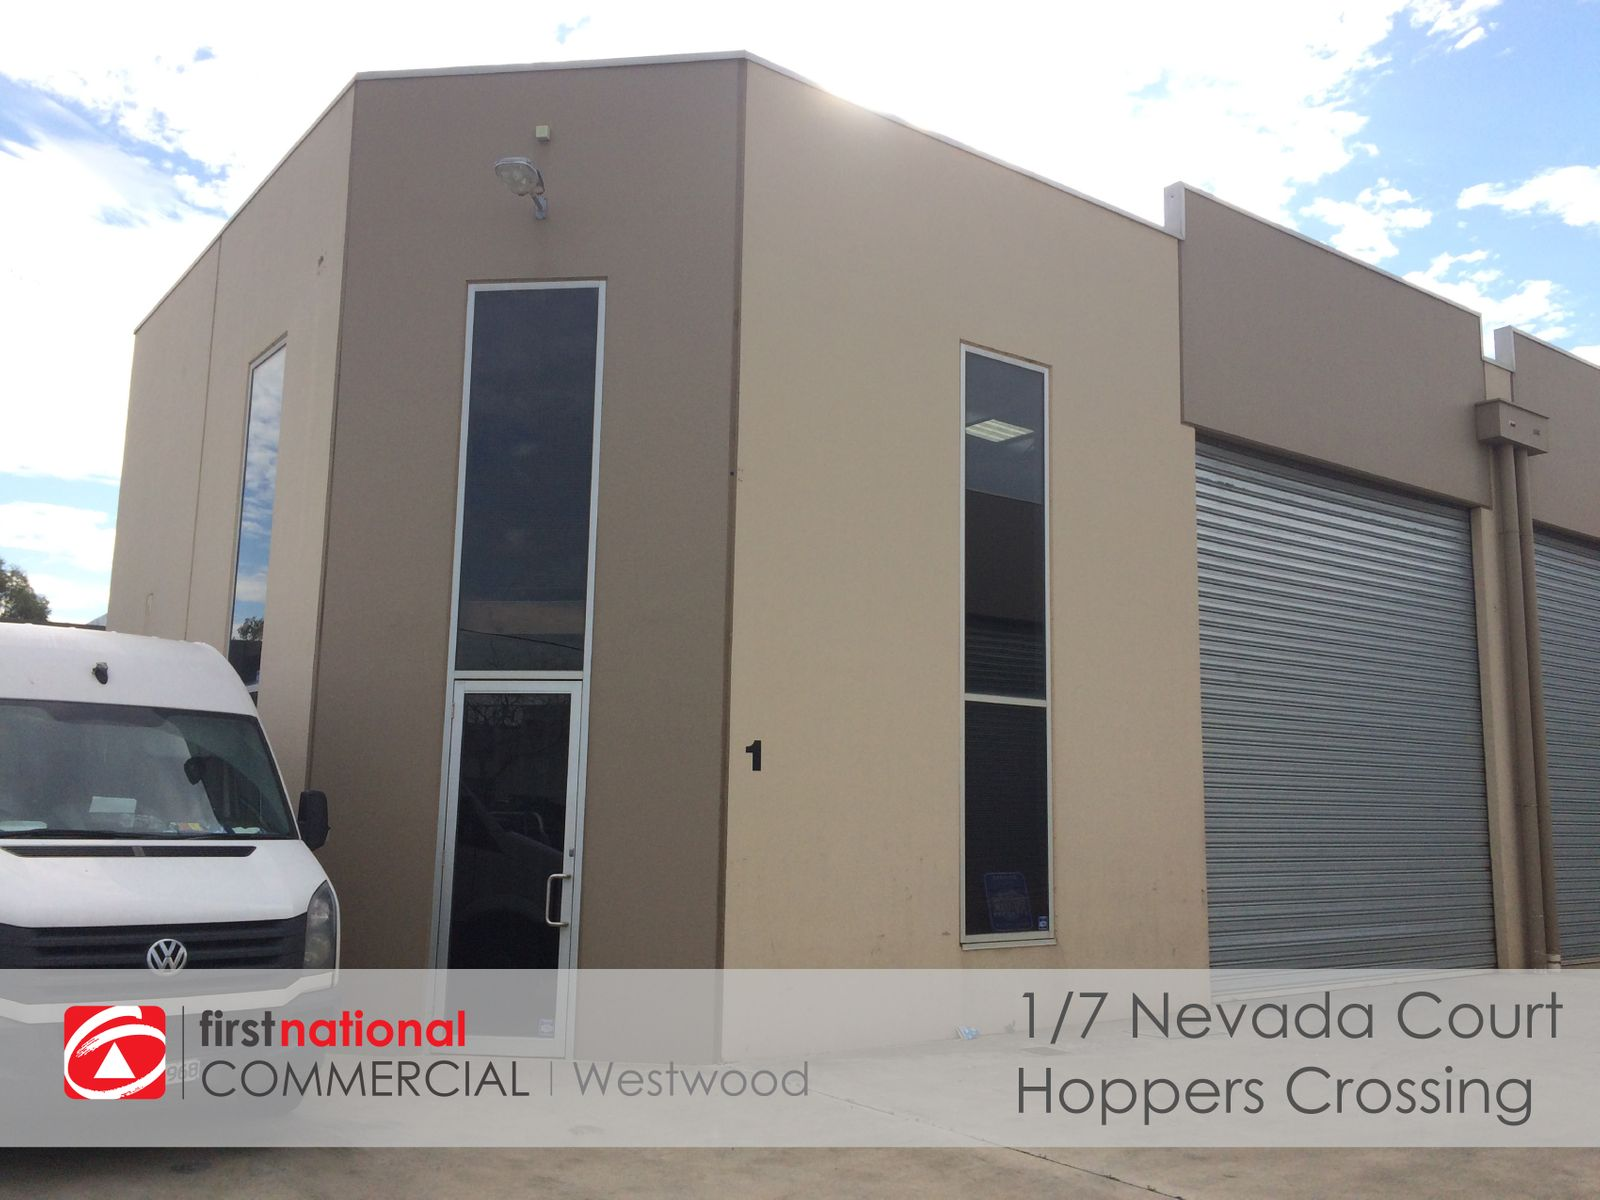 1/7 Nevada Court, Hoppers Crossing, VIC 3029